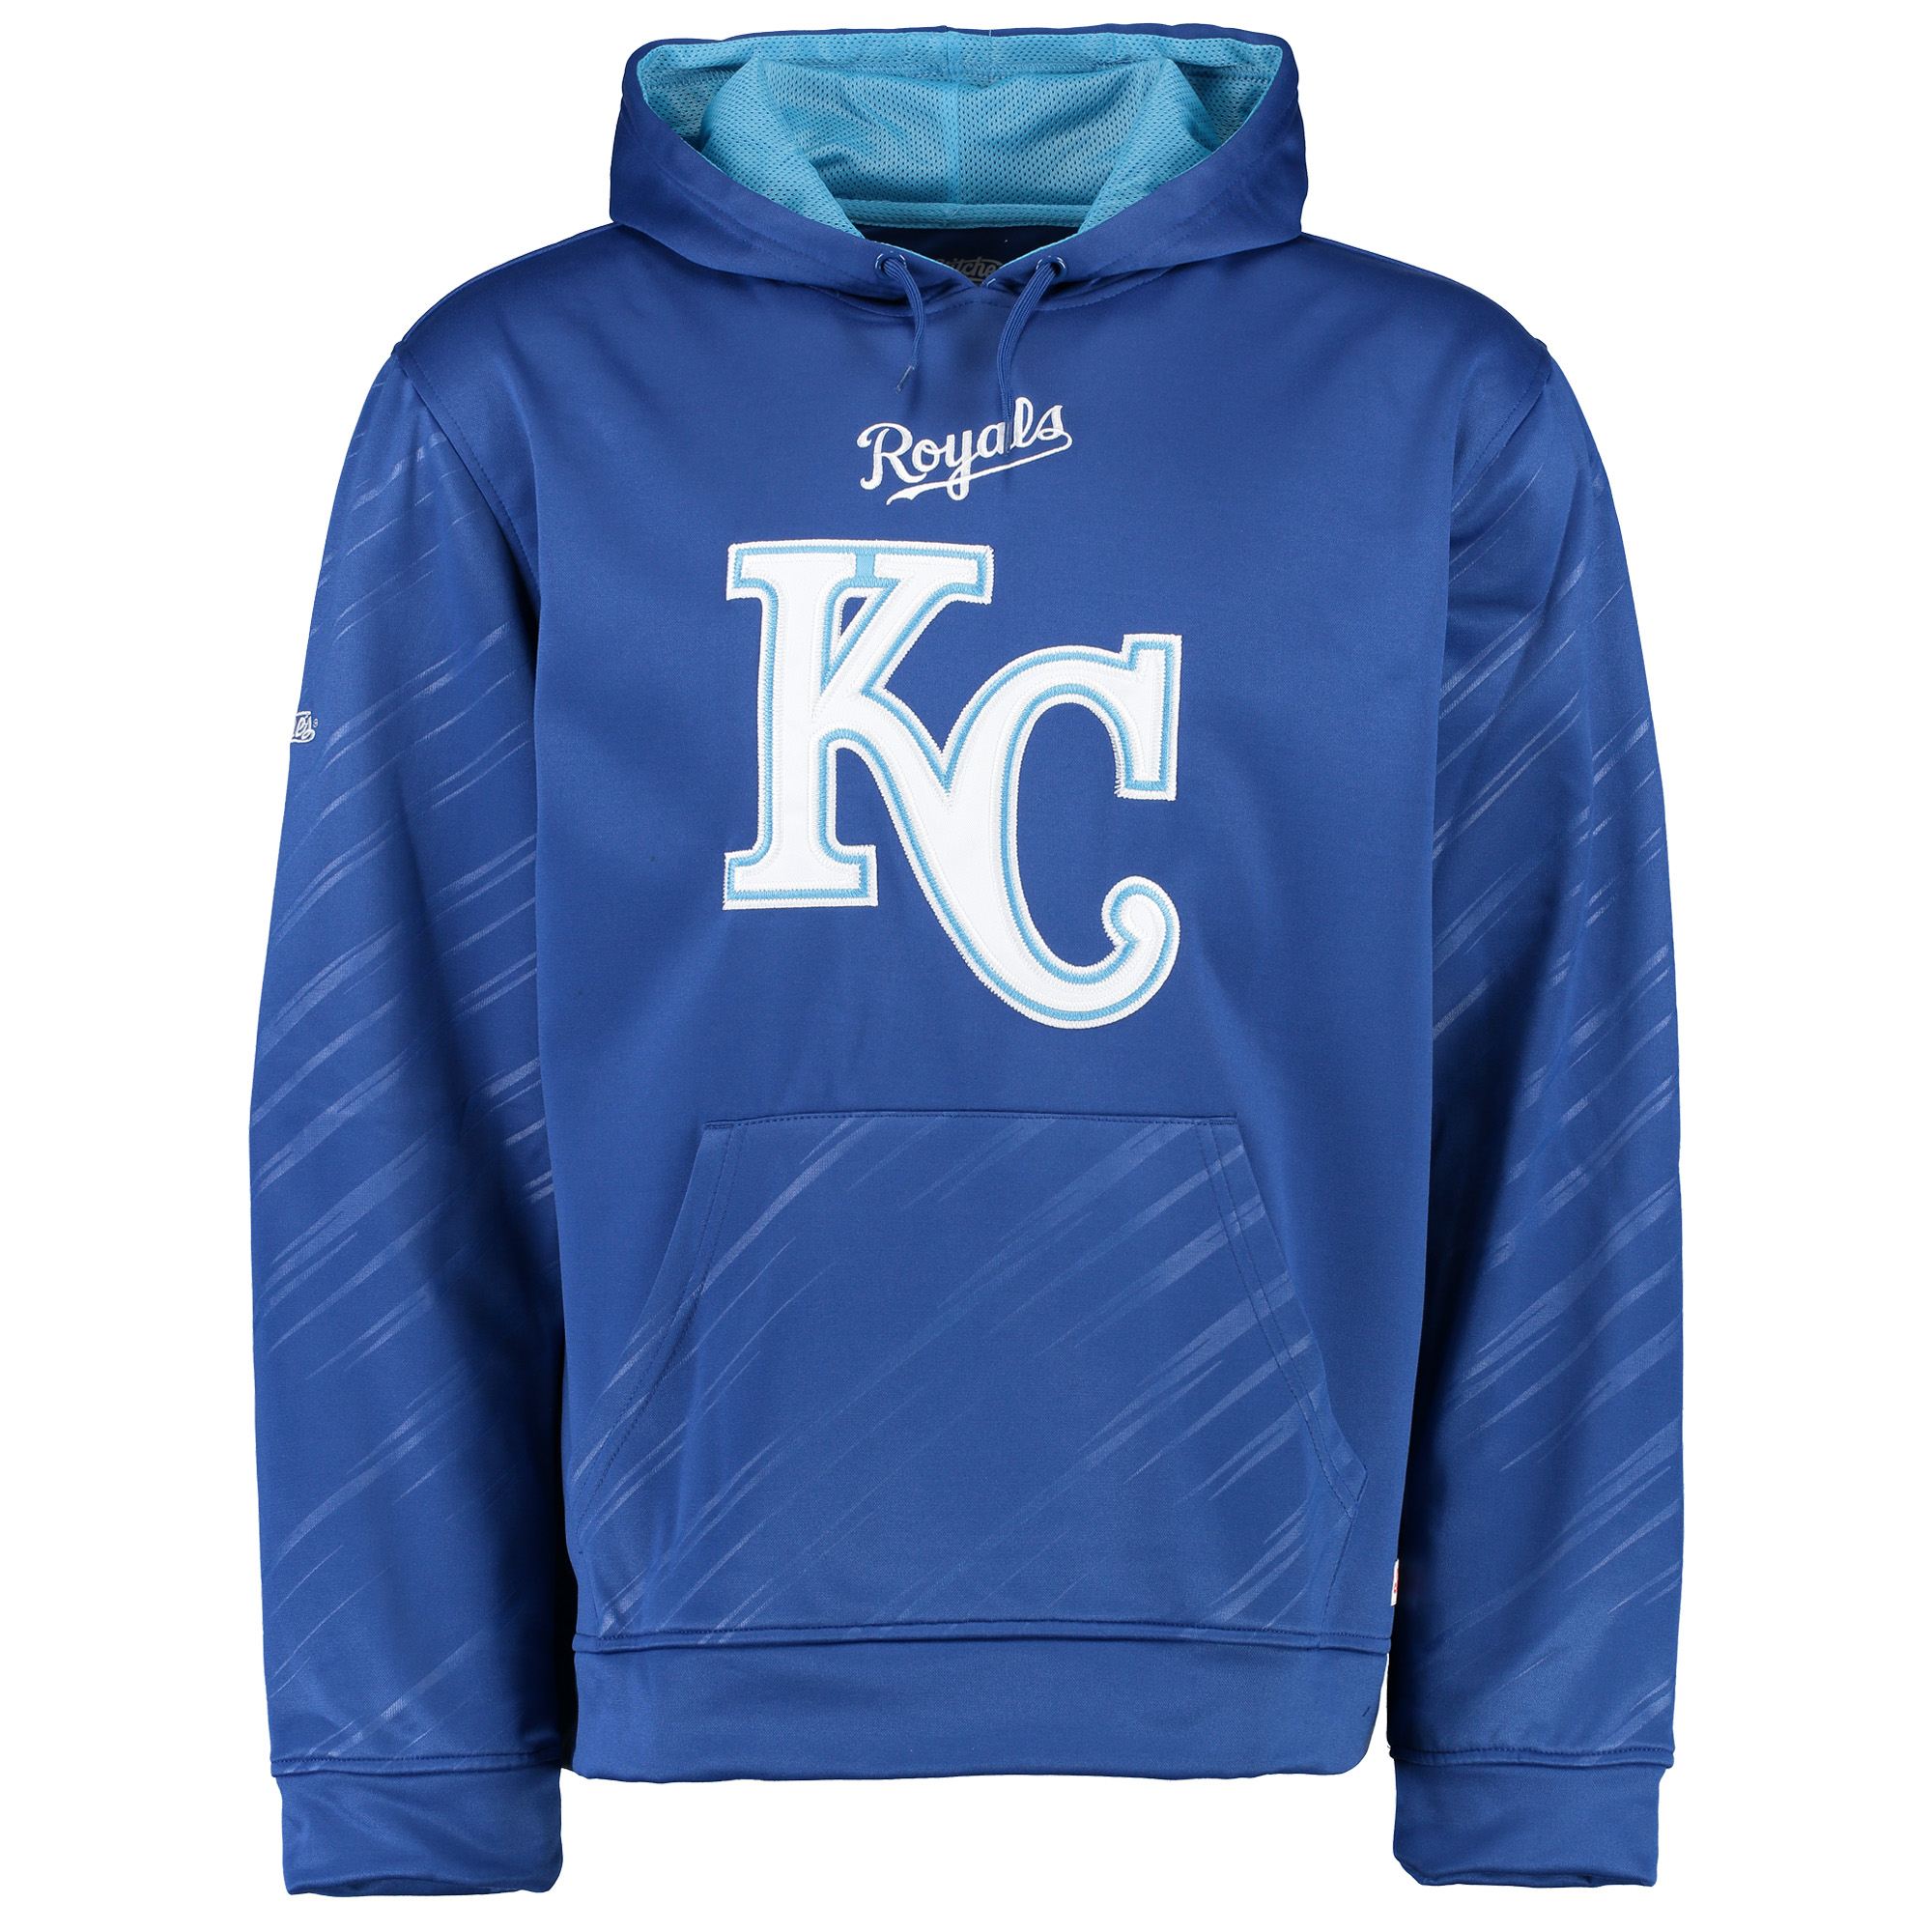 Kansas City Royals Stitches Pullover Fleece Hoodie with Contrast Hood - Royal